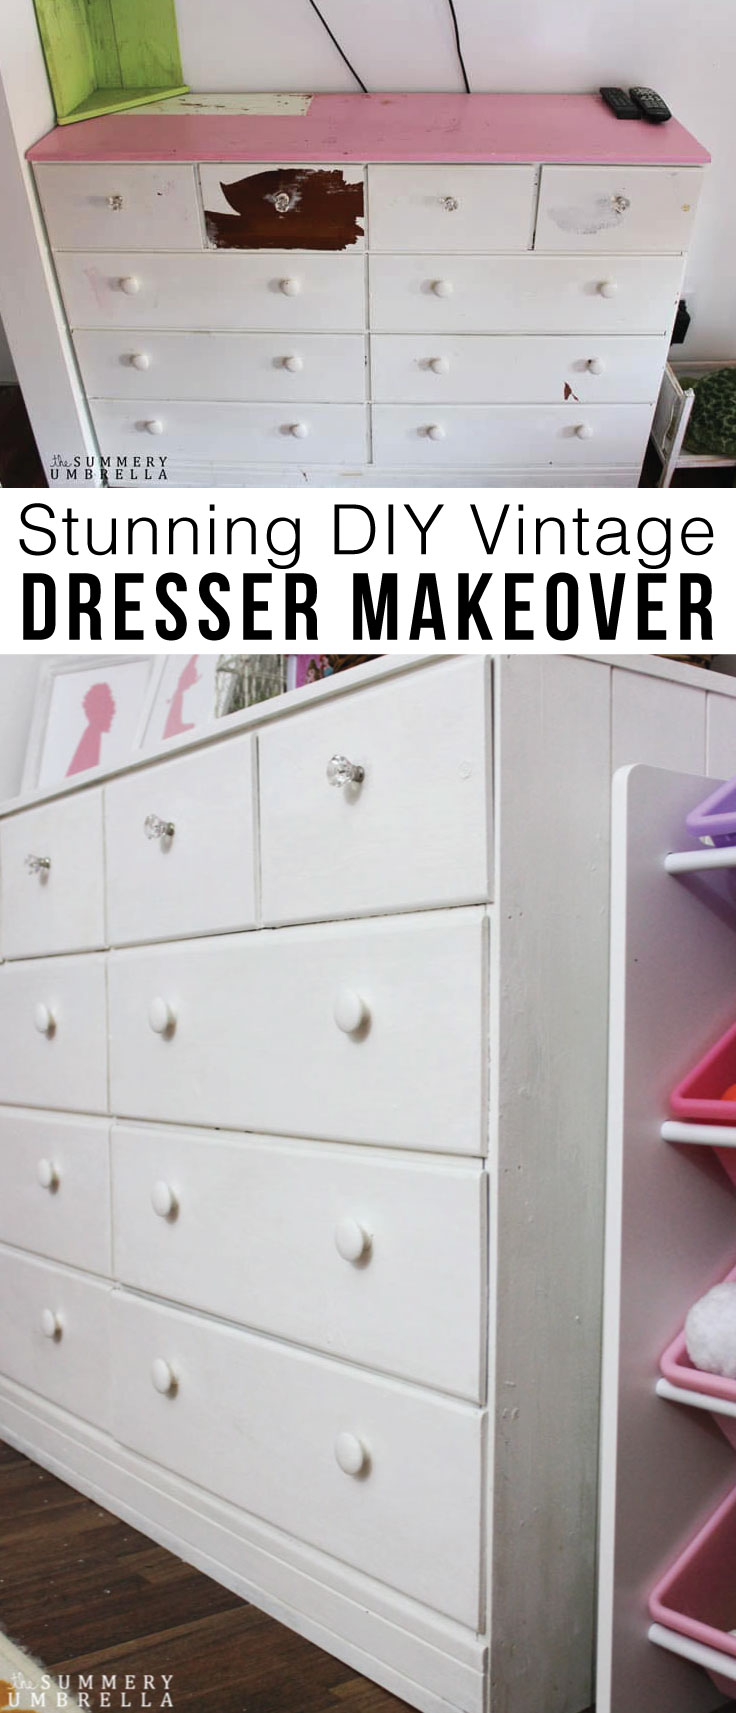 Old dresser makeover Chalk Paint Do You Have Dresser That Desperately Needs Little Tlc Then Youll The Summery Umbrella Stunning Diy Vintage Dresser Makeover Before And After